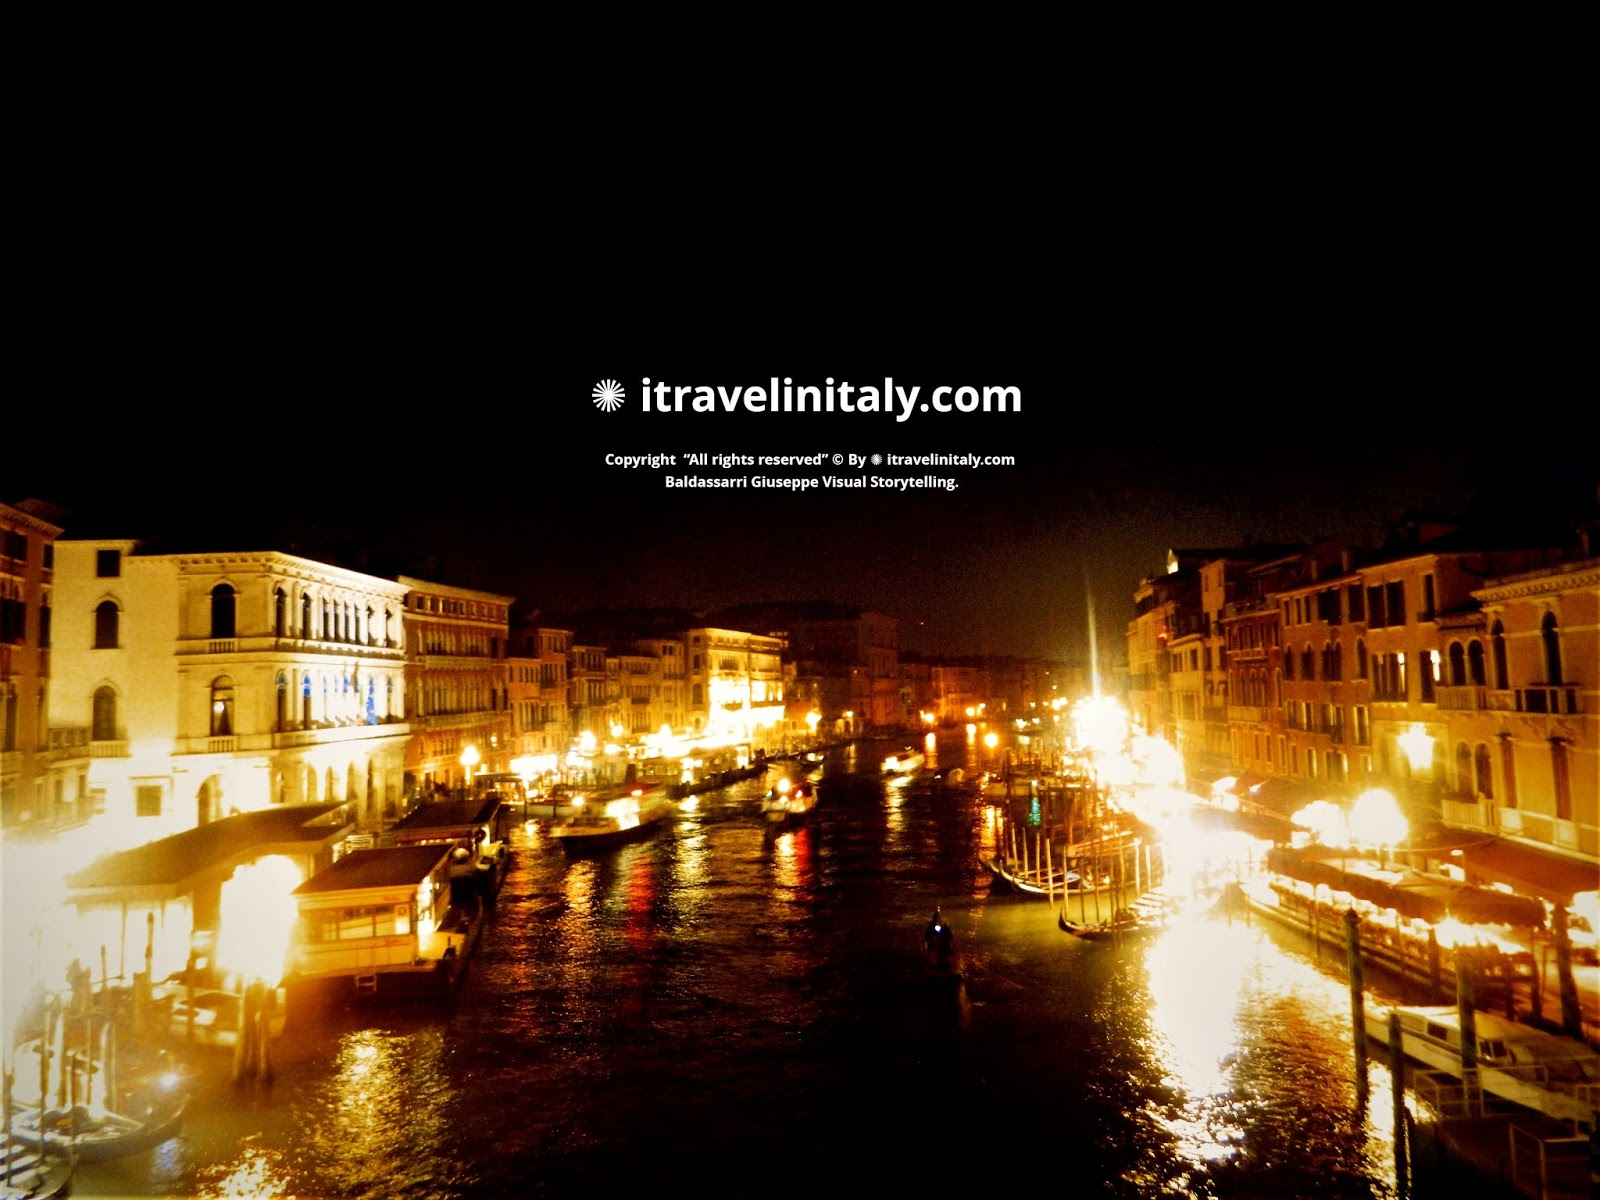 "The Rialto Bridge by Night  Copyright  ""All rights reserved"" © By itravelinitaly.com Baldassarri Giuseppe Visual Storytelling."